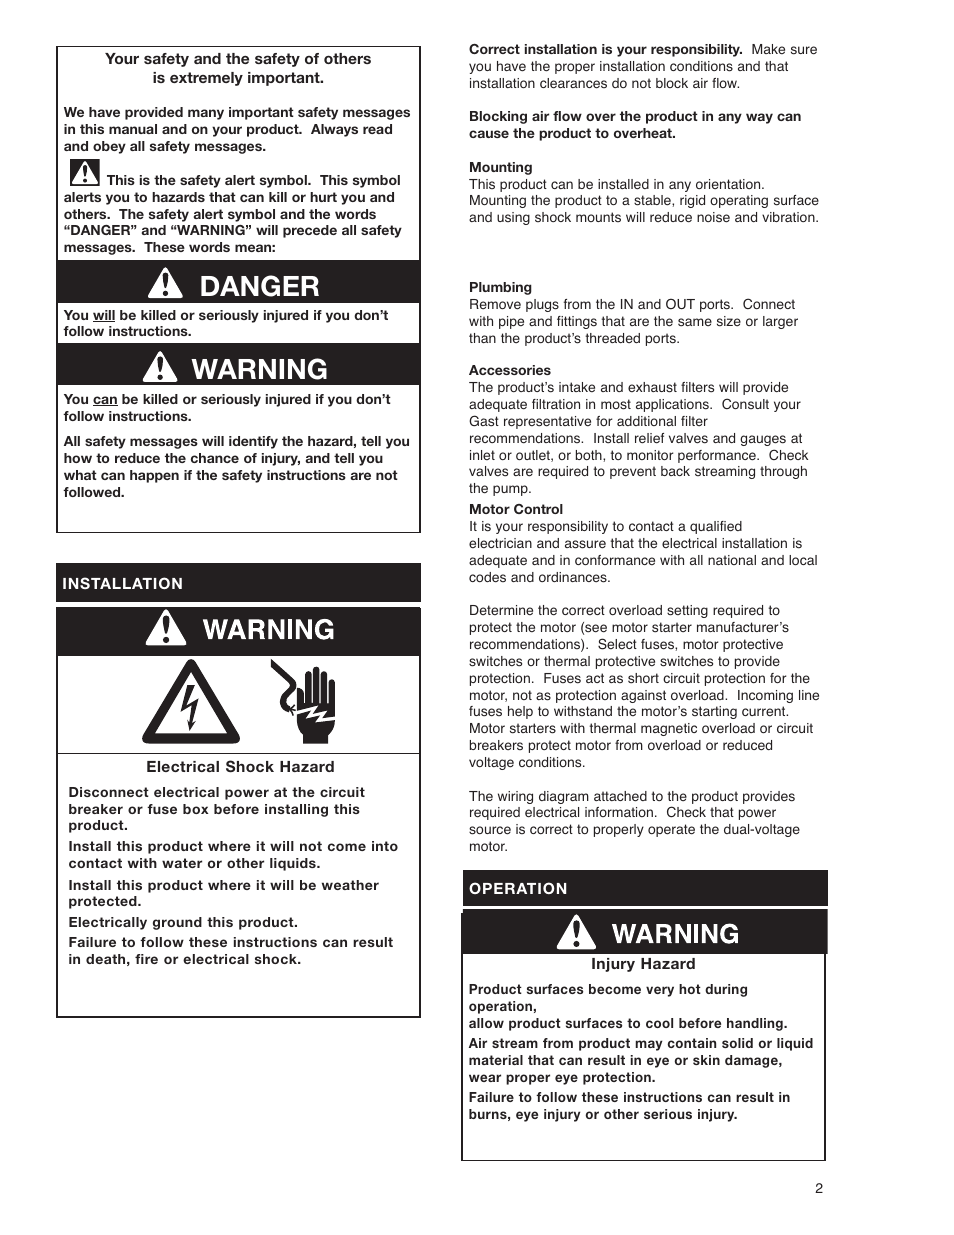 Warning danger   Gast 1423 Series Oilless Vacuum Pumps and Compressors User  Manual   Page 2 / 8